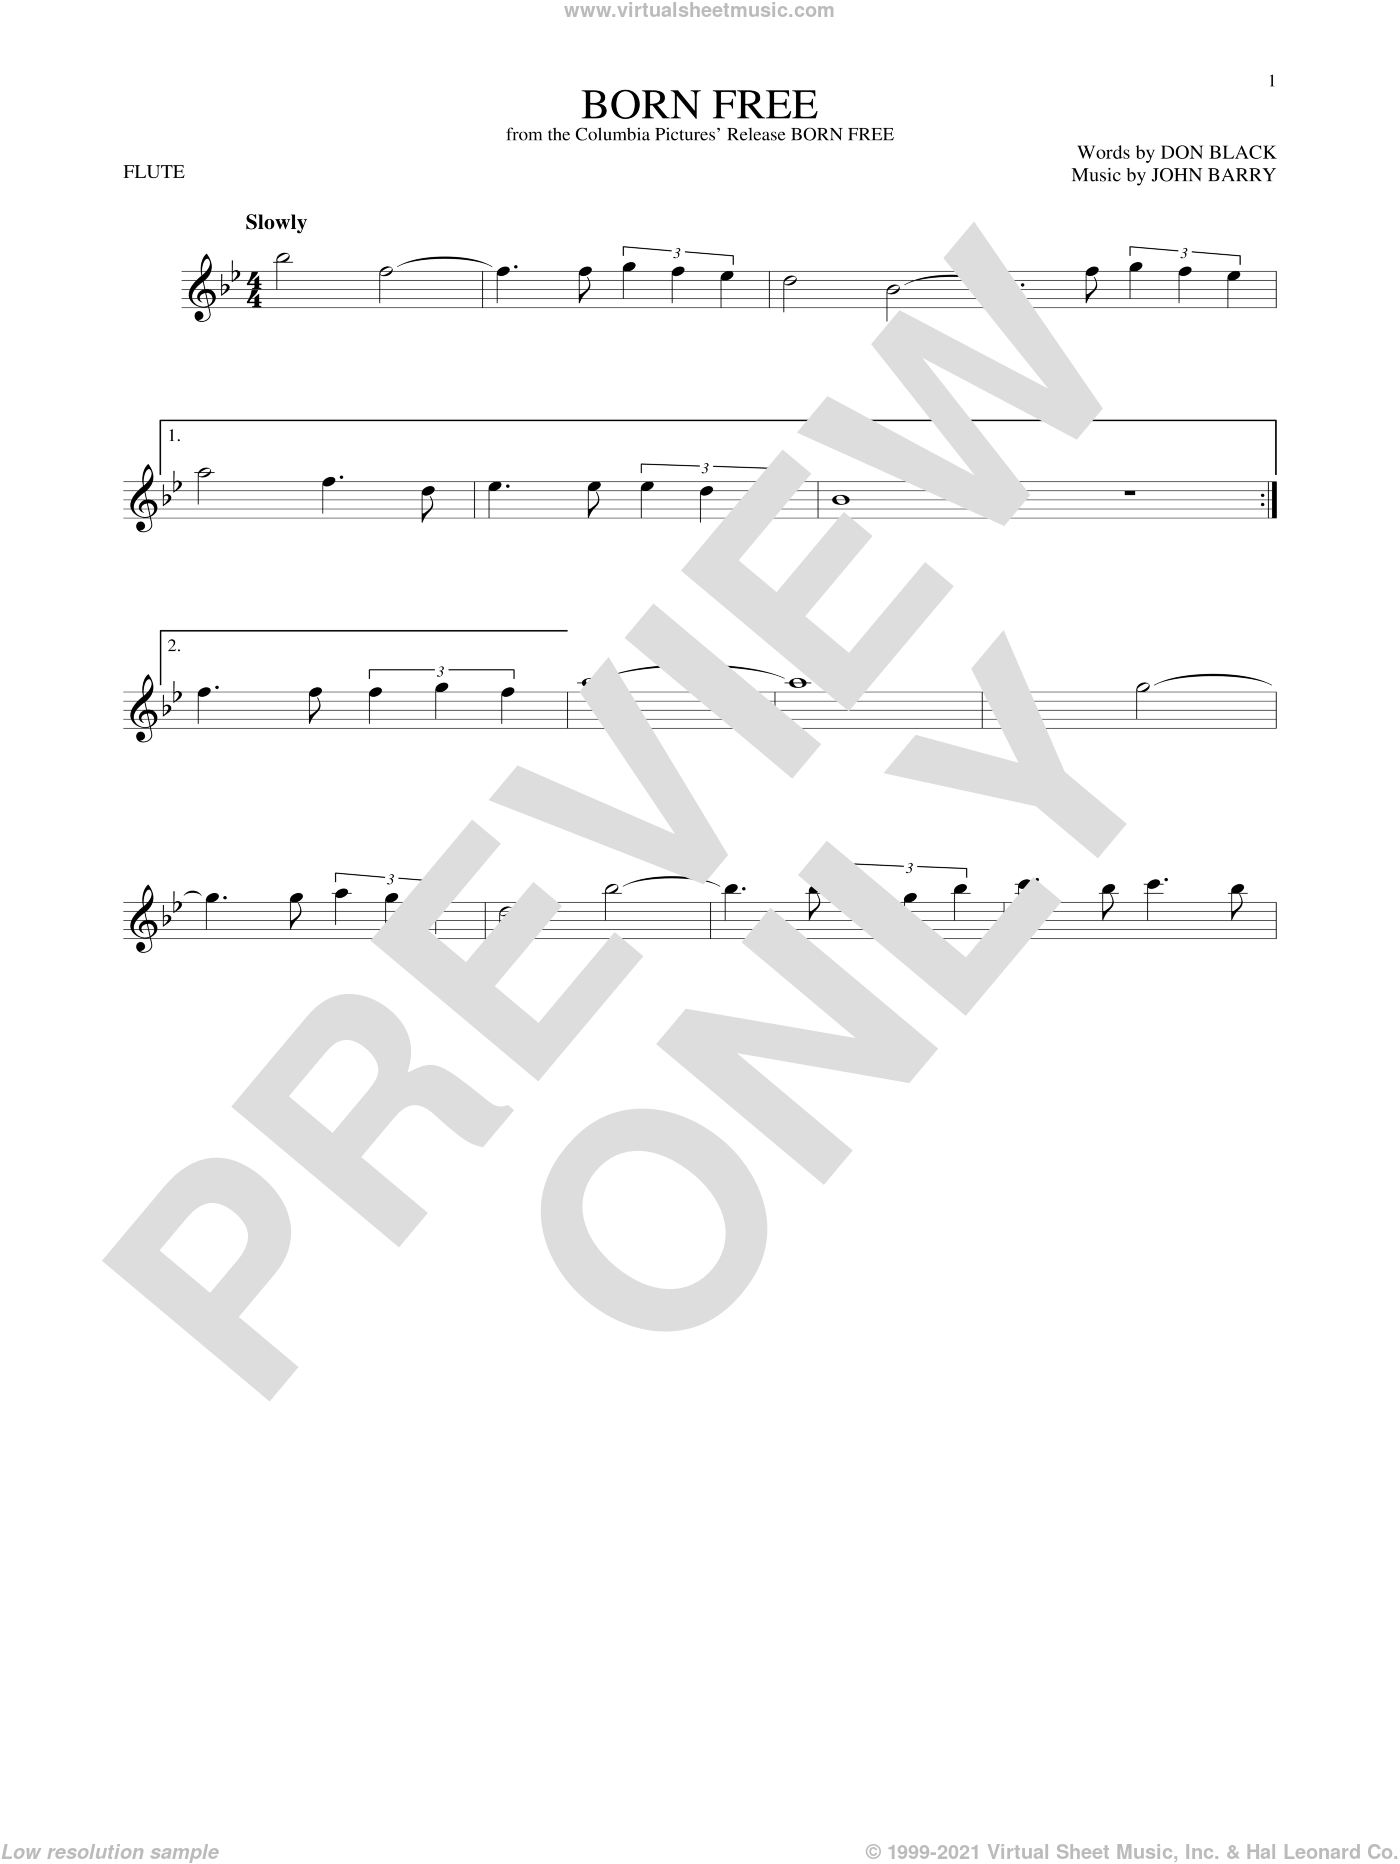 Born Free sheet music for flute solo by Don Black, Roger Williams and John Barry, intermediate skill level